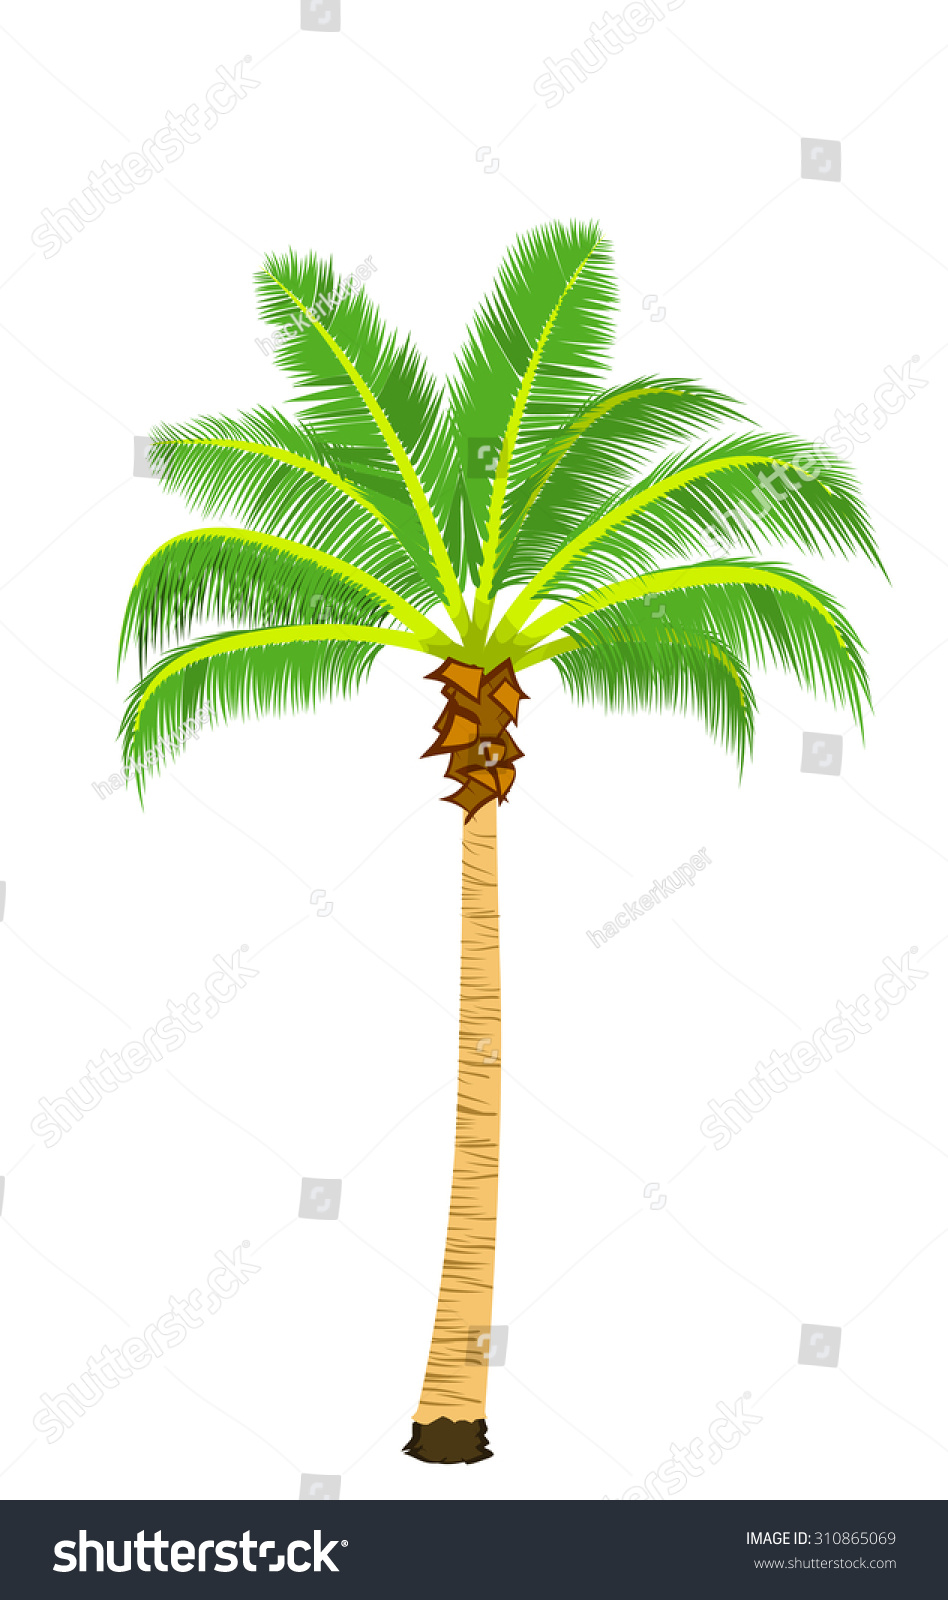 Vector Realistic Palm Tree Illustration Colorful Stock Vector ...